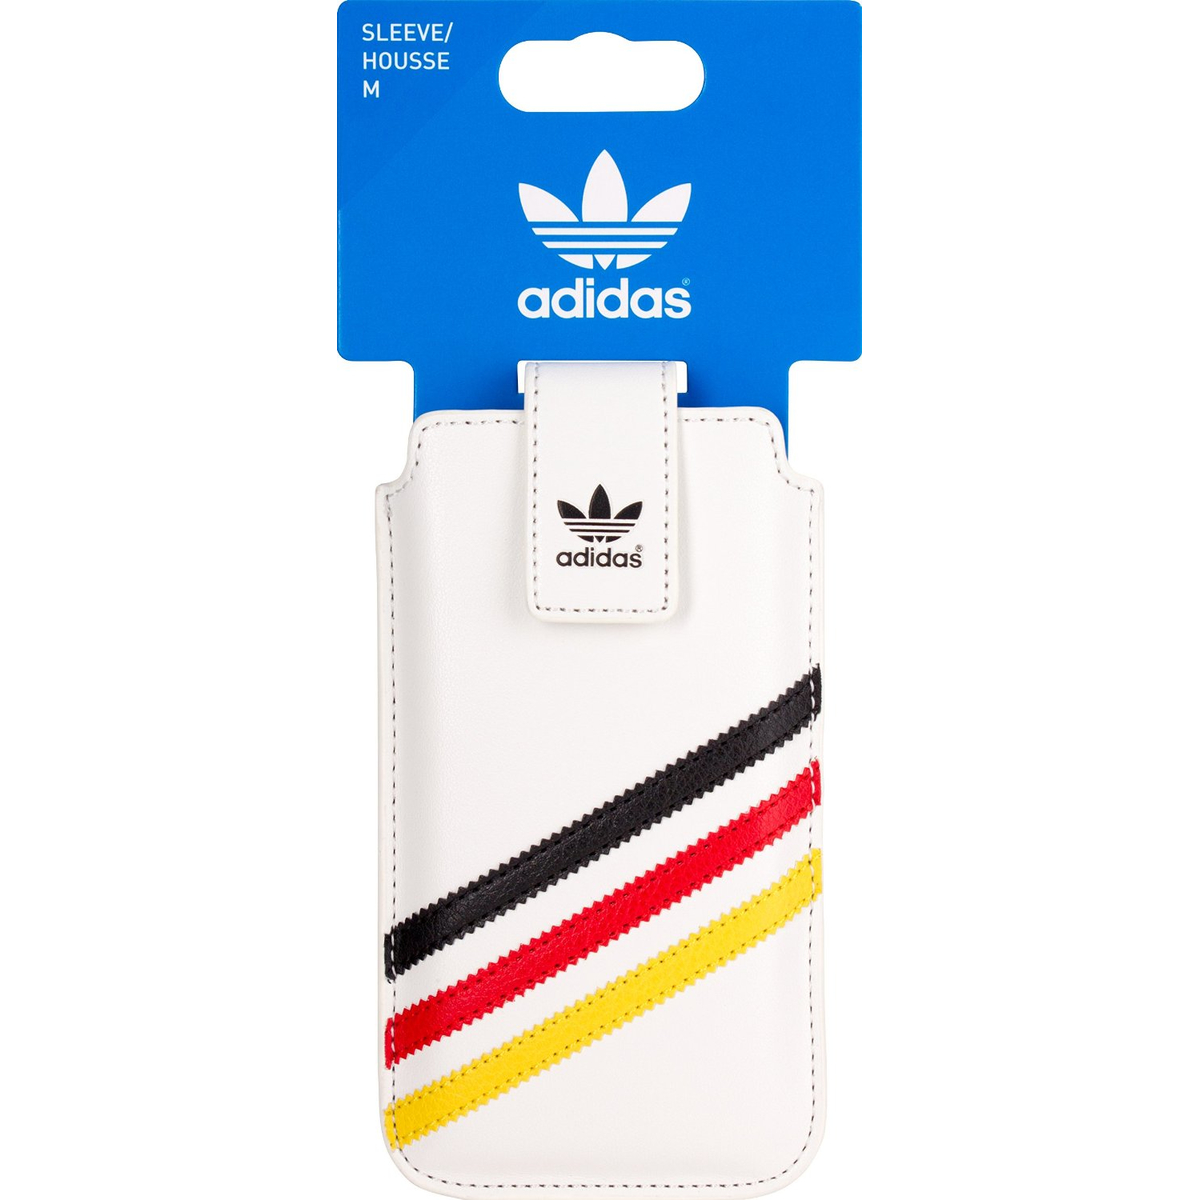 adidas Tasche Tasche Sleeve M iPhone 4/4s/5/5c Galaxy S3...